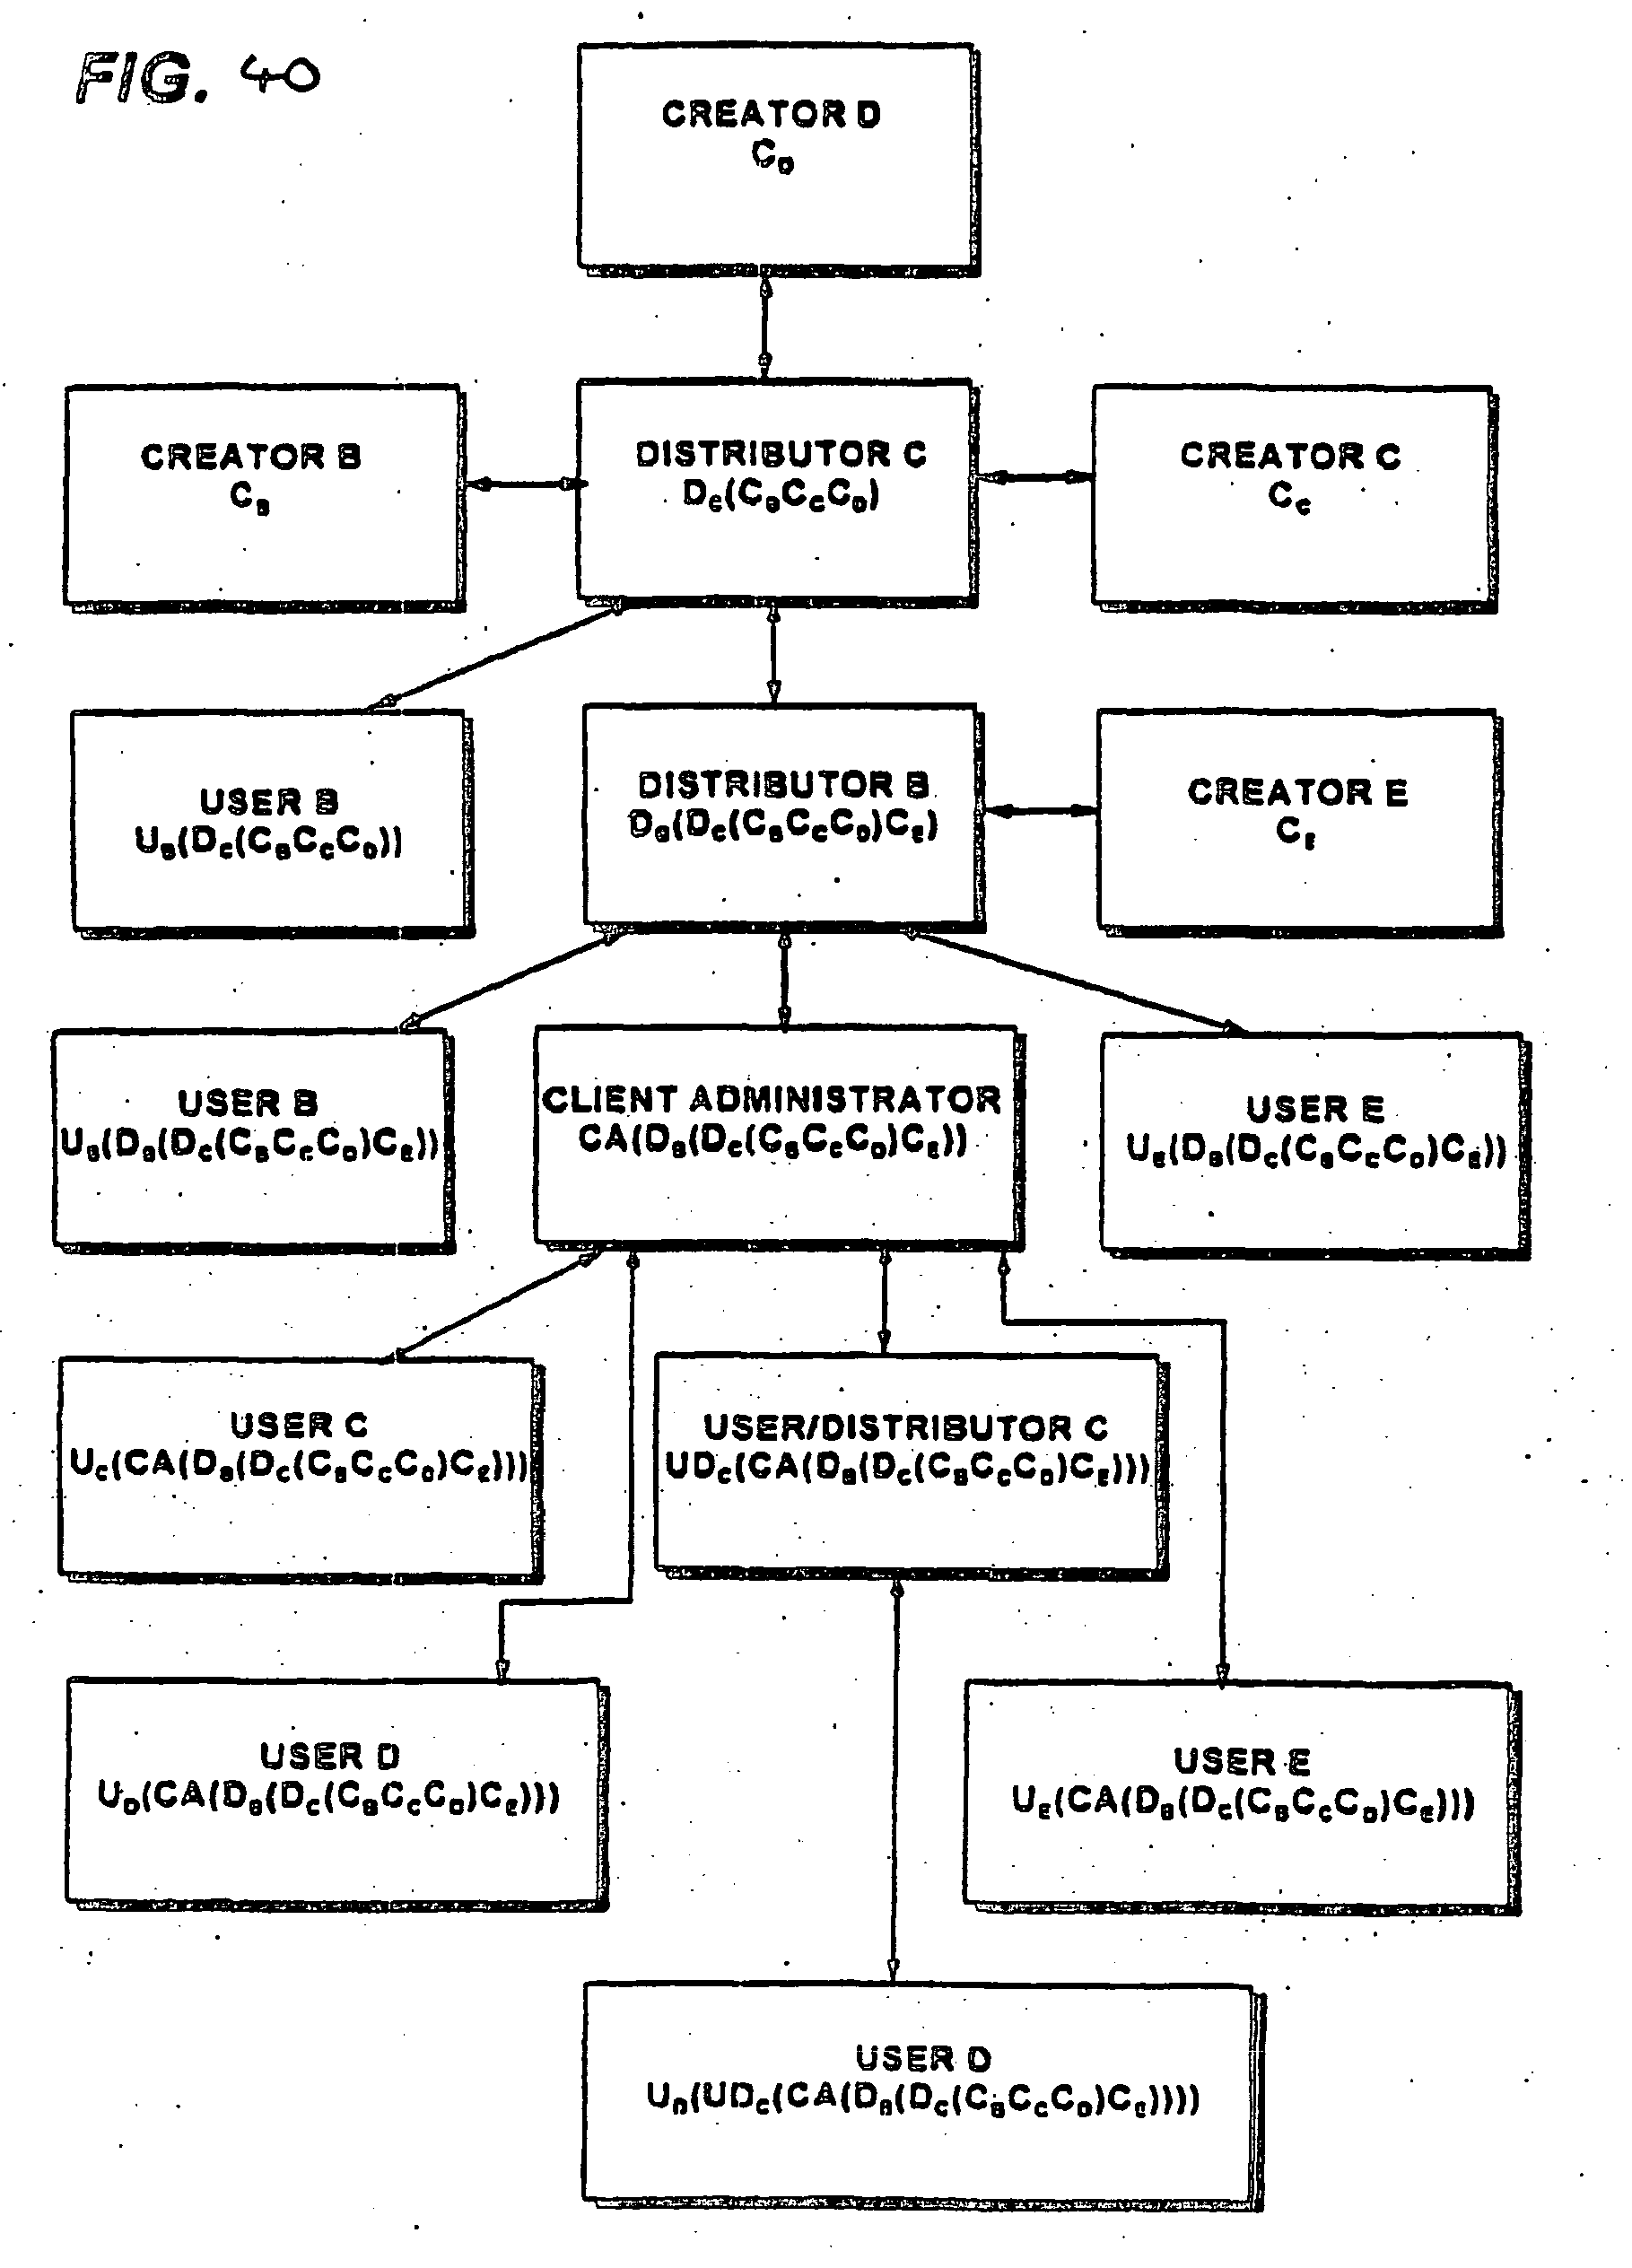 EP B2 Systems and methods for secure transaction